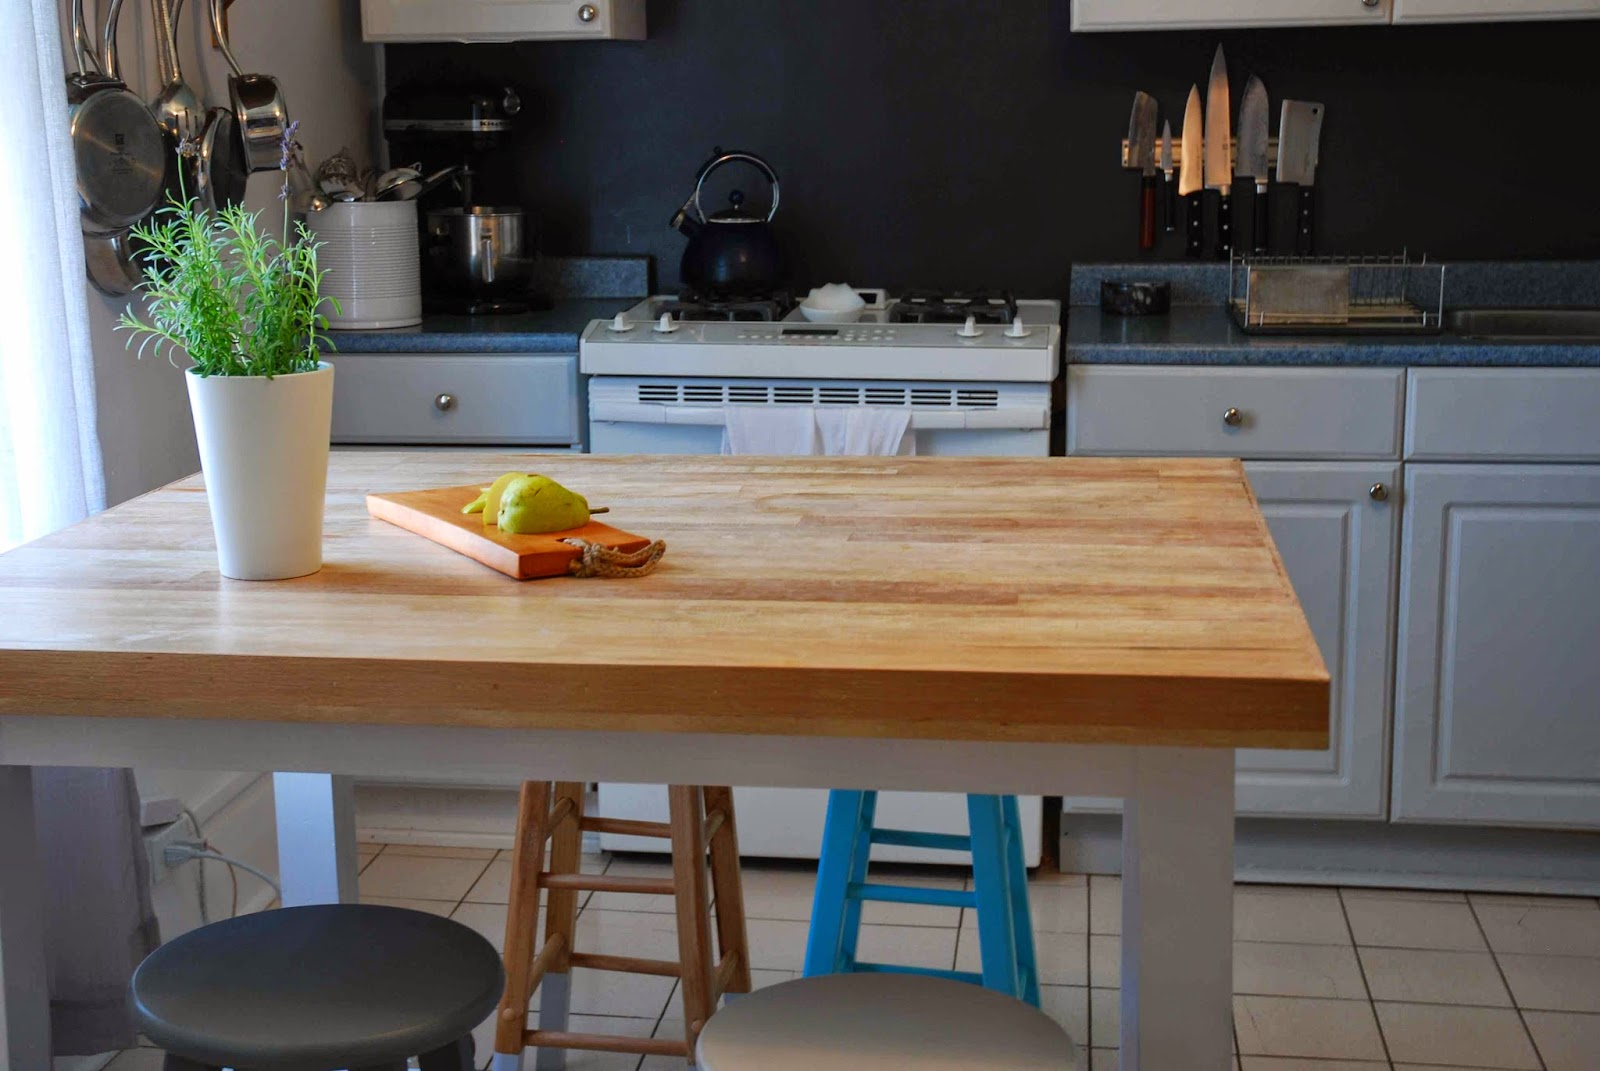 Shayda Campbell: Our Kitchen Island DIY